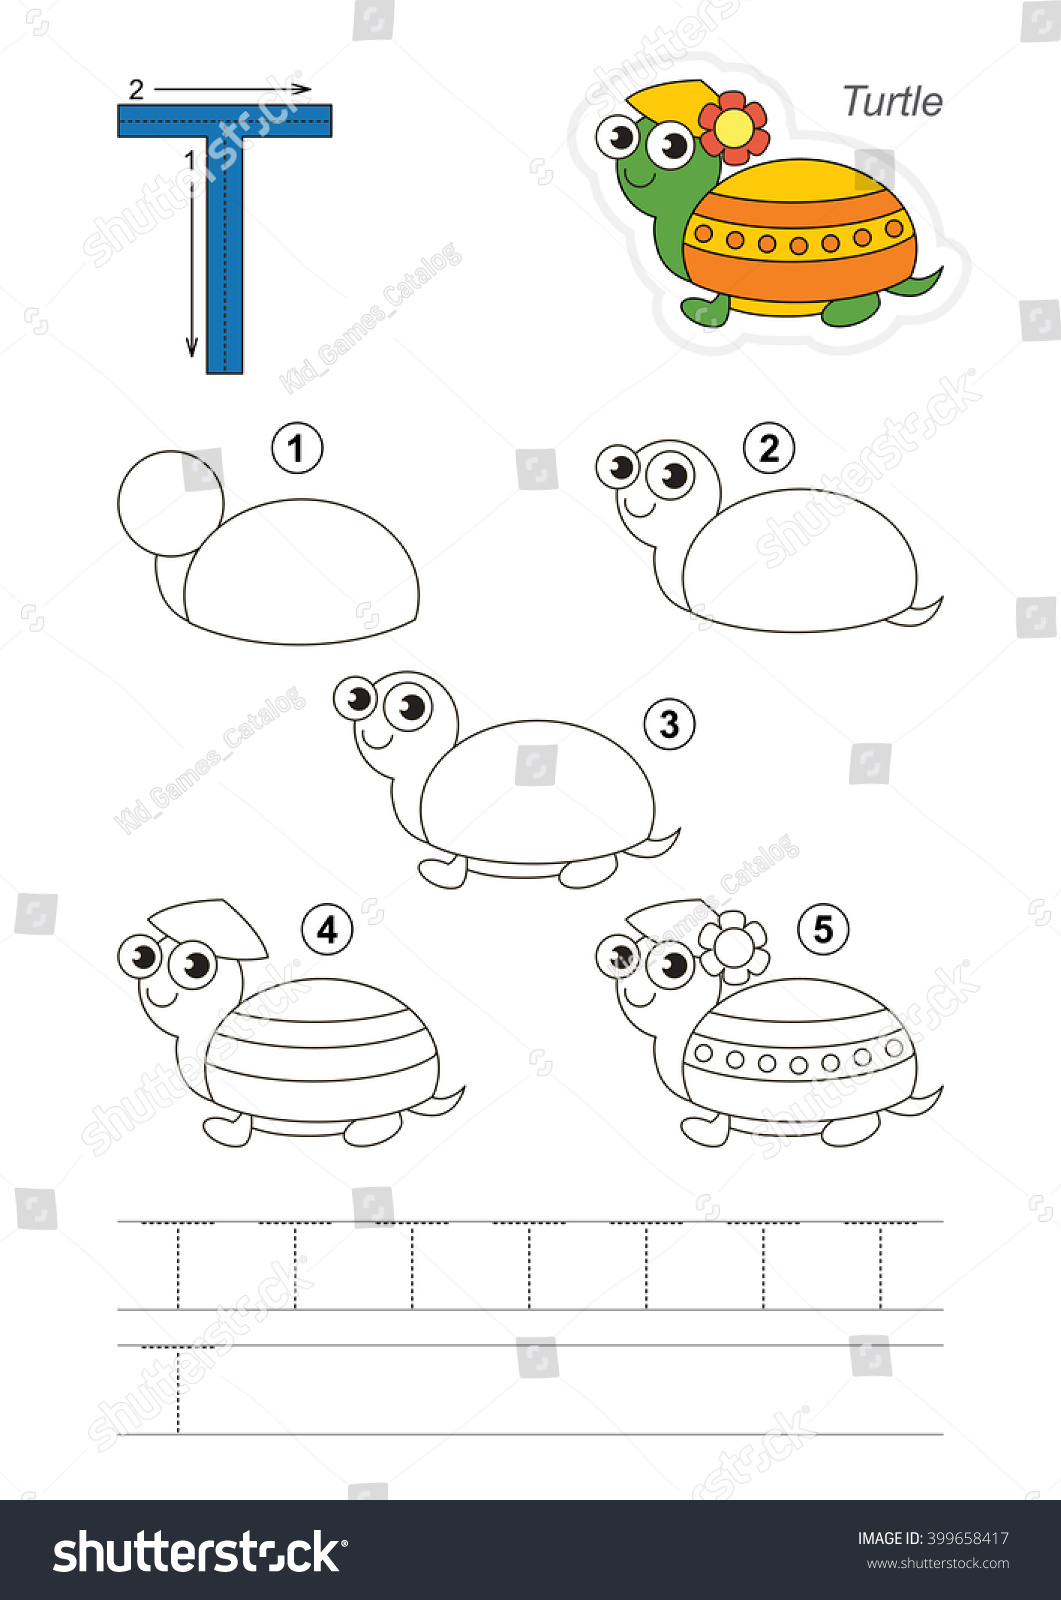 Zoo Alphabet Complete Learn Handwriting Drawing Stock